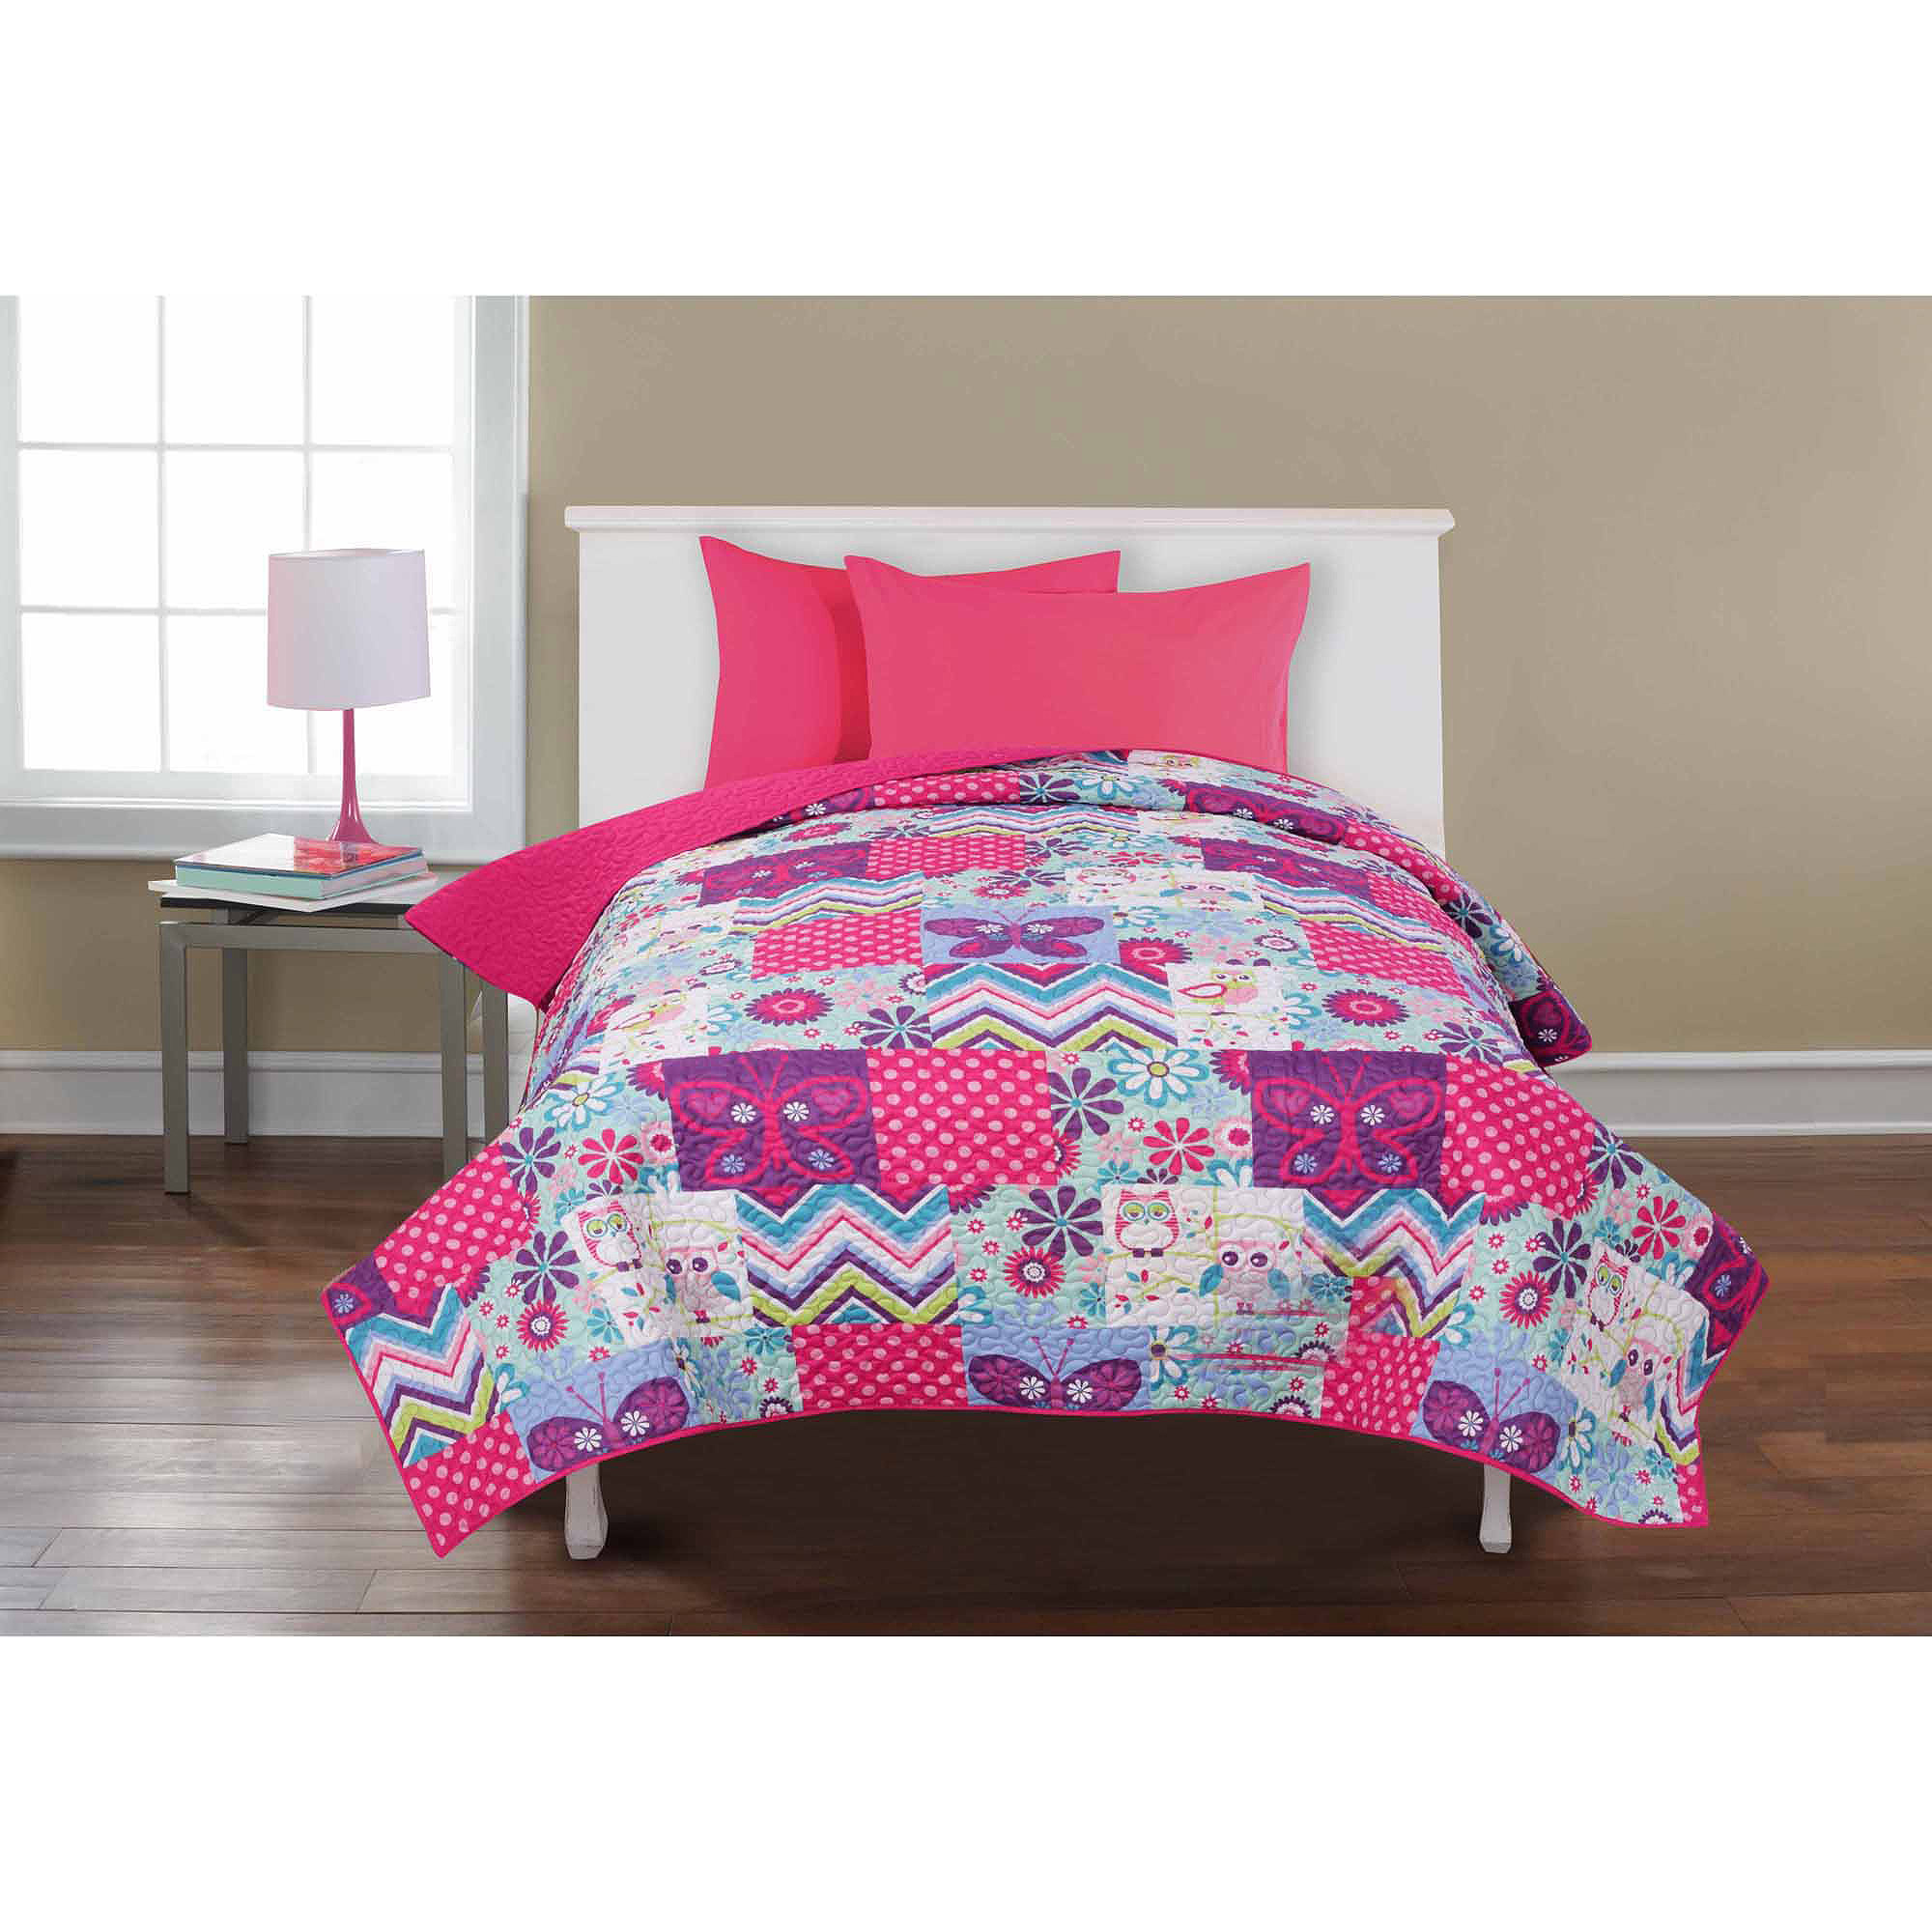 Mainstays Kids' Reversible Quilt, Owls & Butterflies